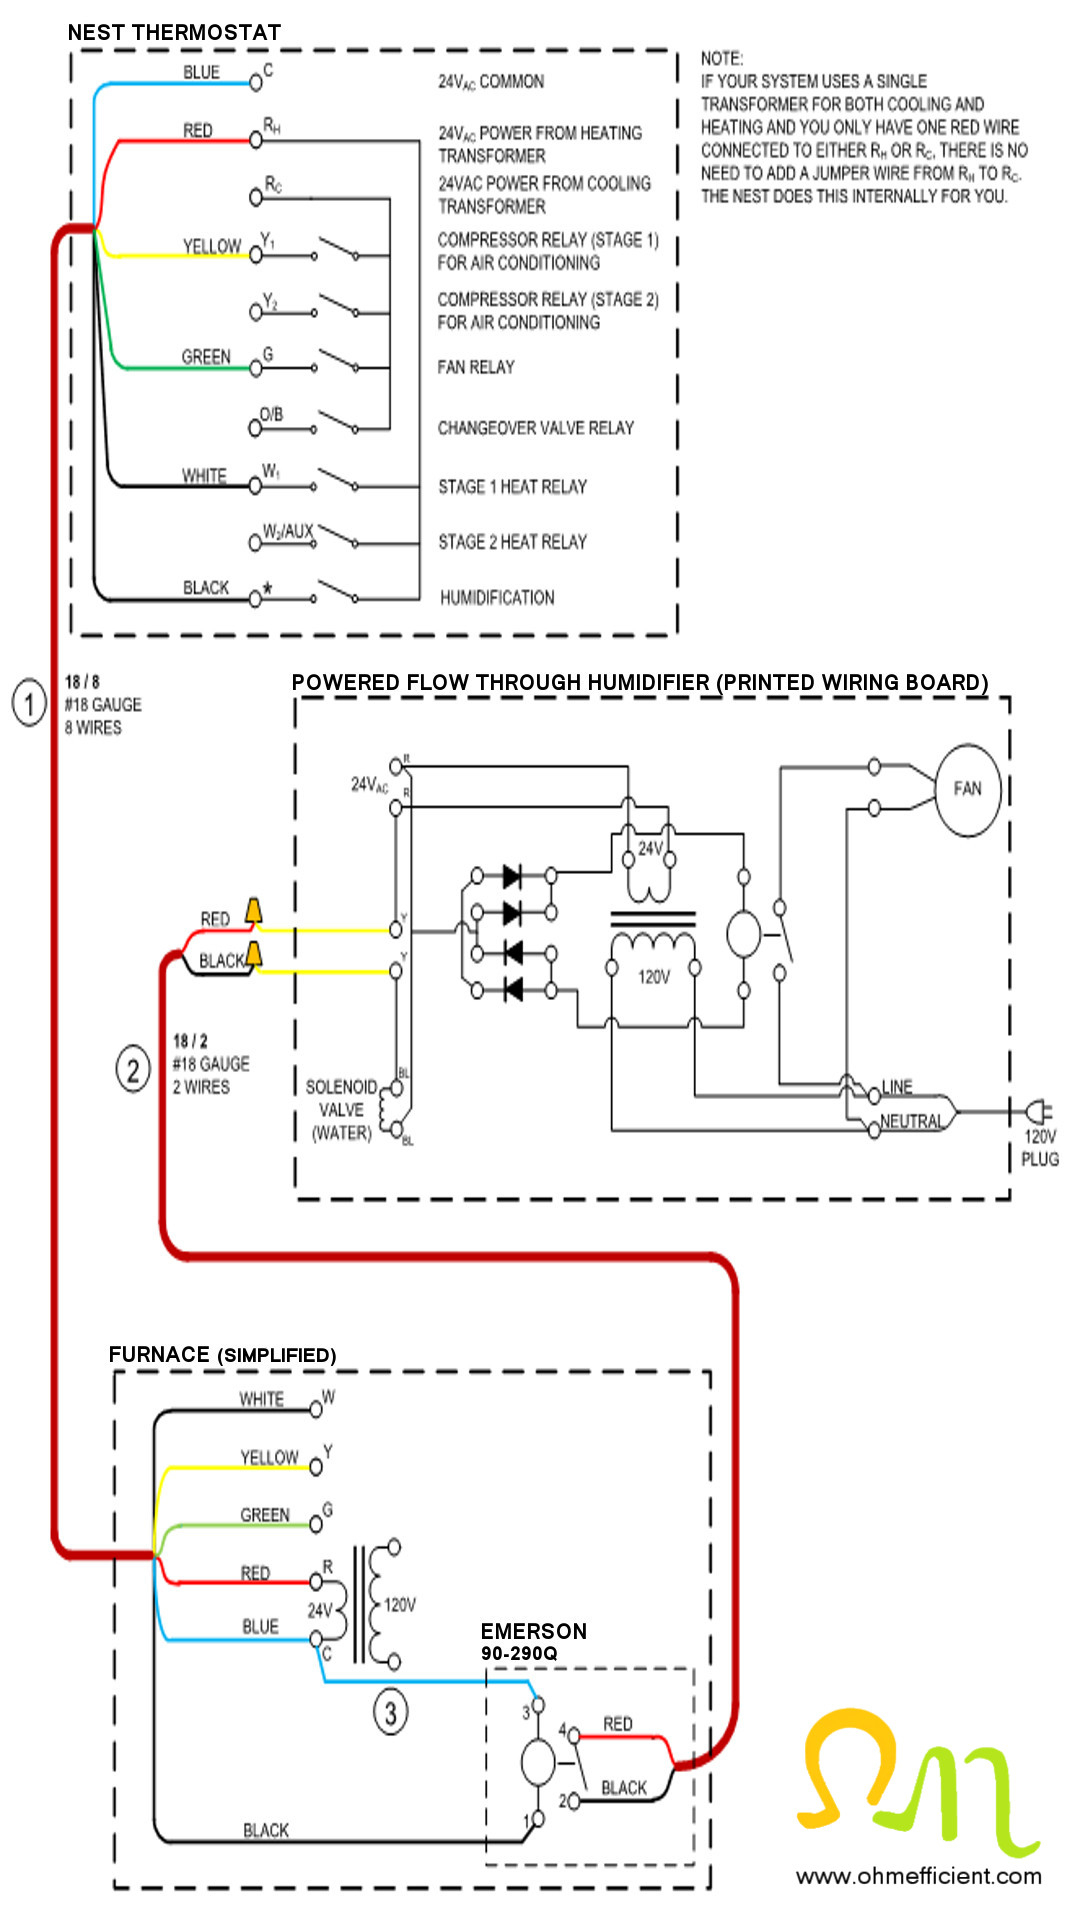 How To Connect & Setup A Nest Thermostat To Function As A Humidistat - Nest Wiring Diagram For Humidifier